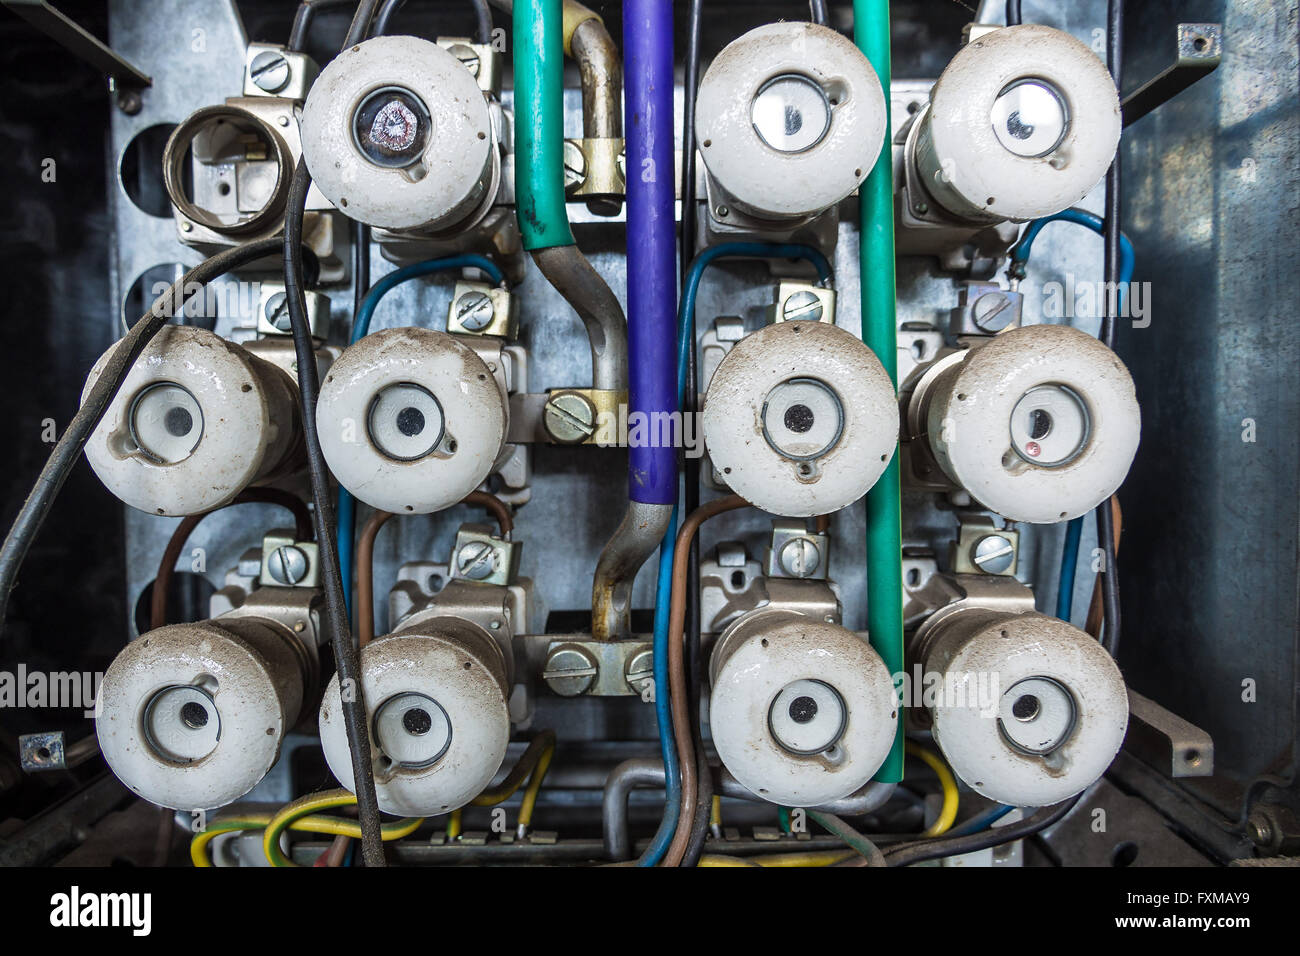 hight resolution of an old fuse box out of order stock image